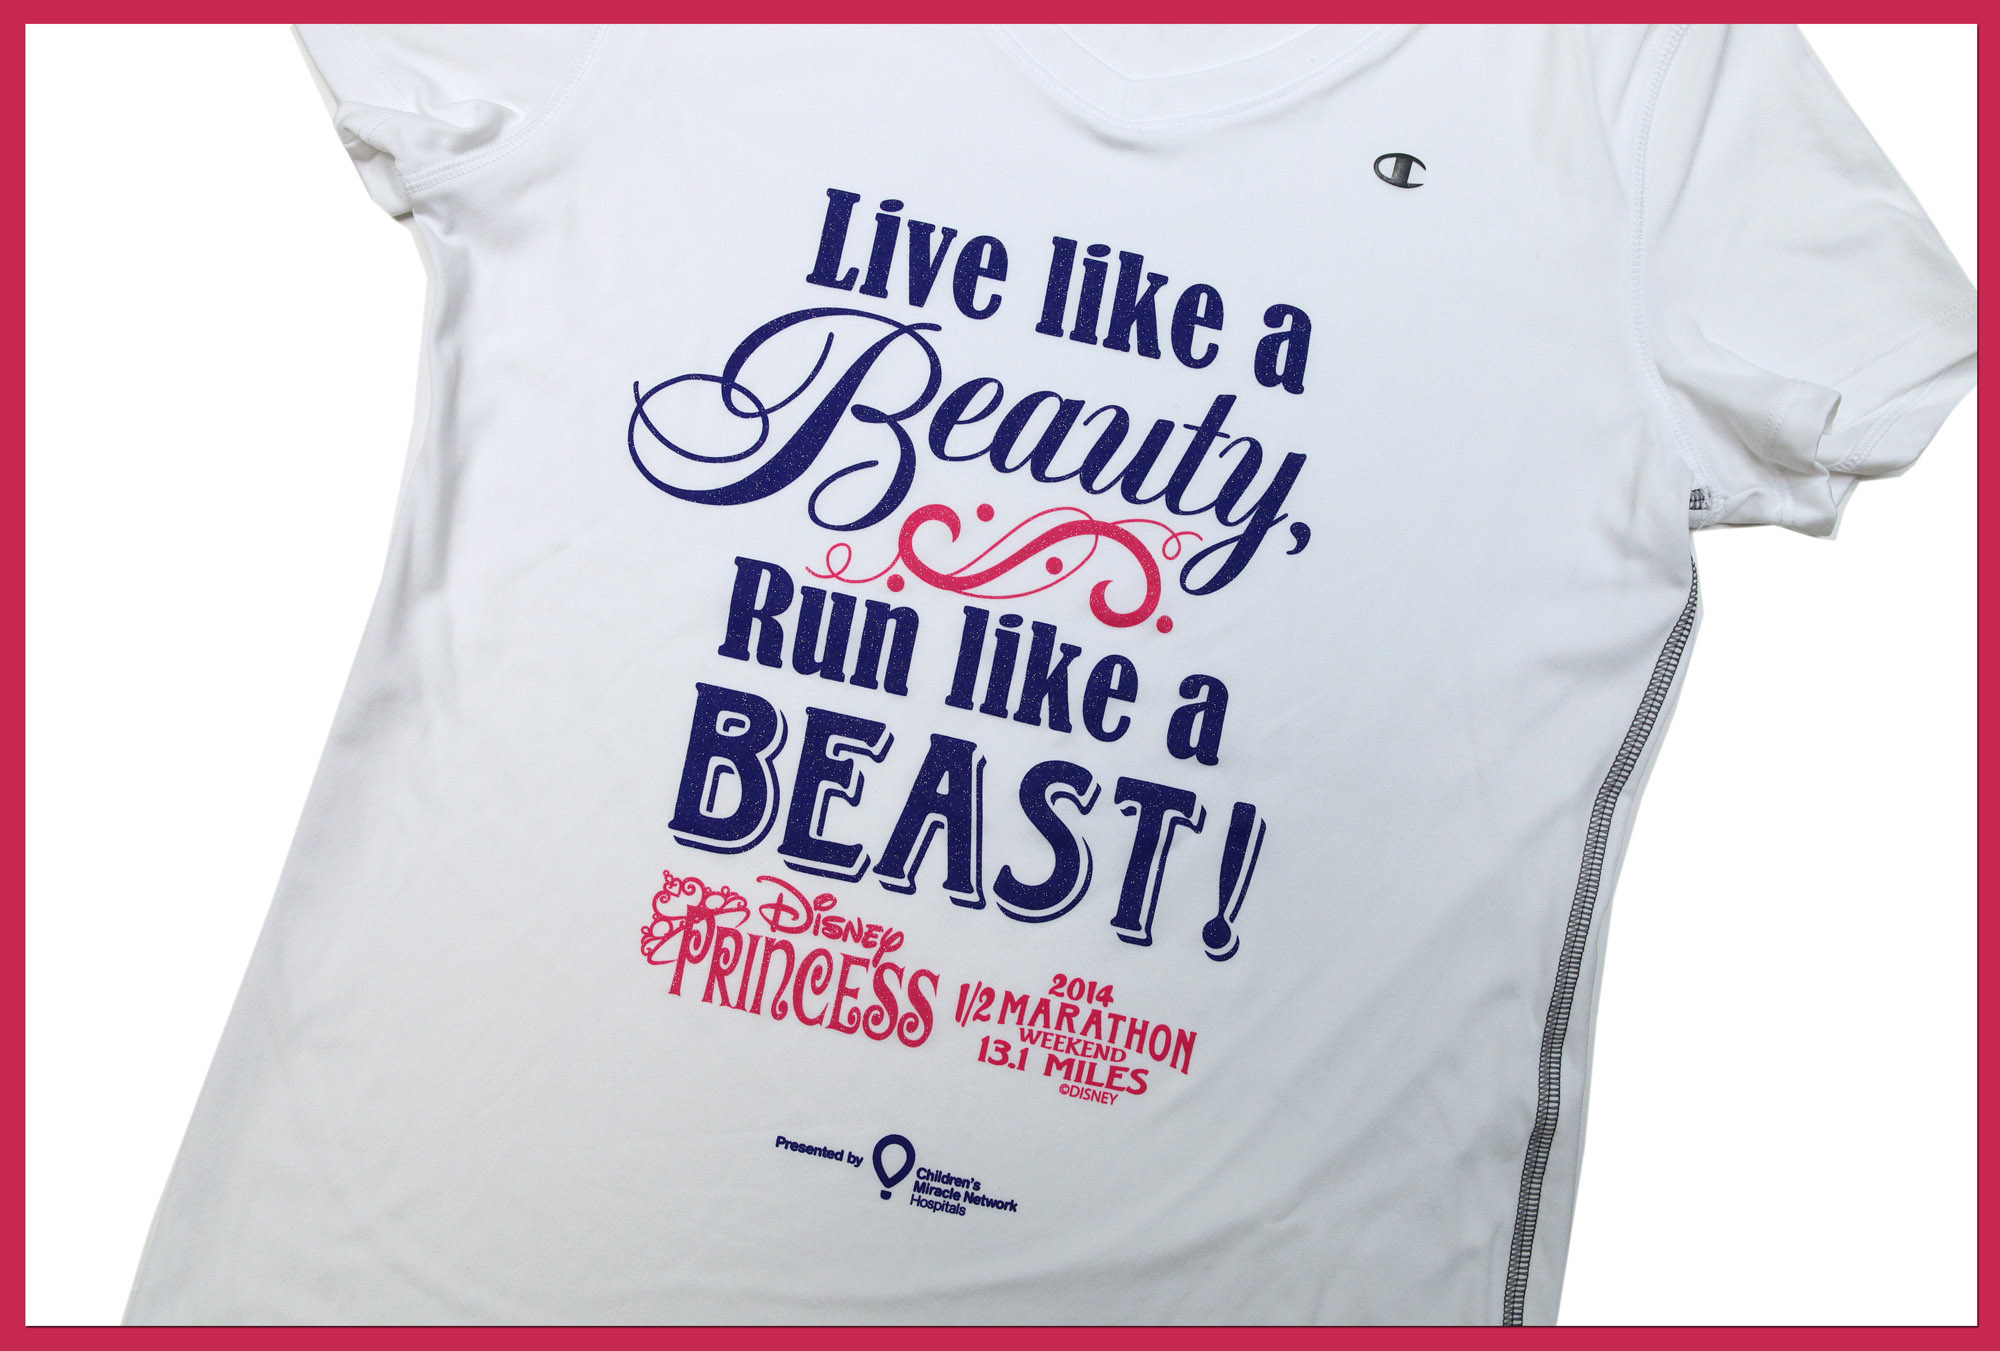 01_ParksBlog_PrincessHalf2014_Lead